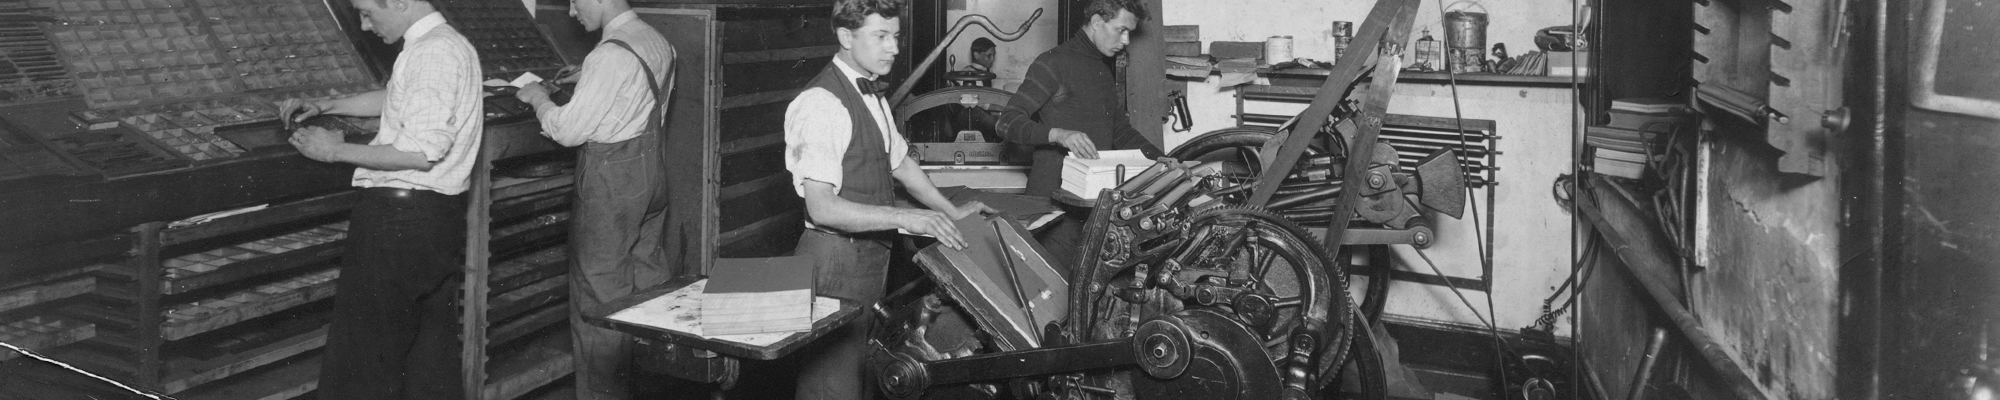 Two men are setting type and two men are operating platen printing presses in 1925